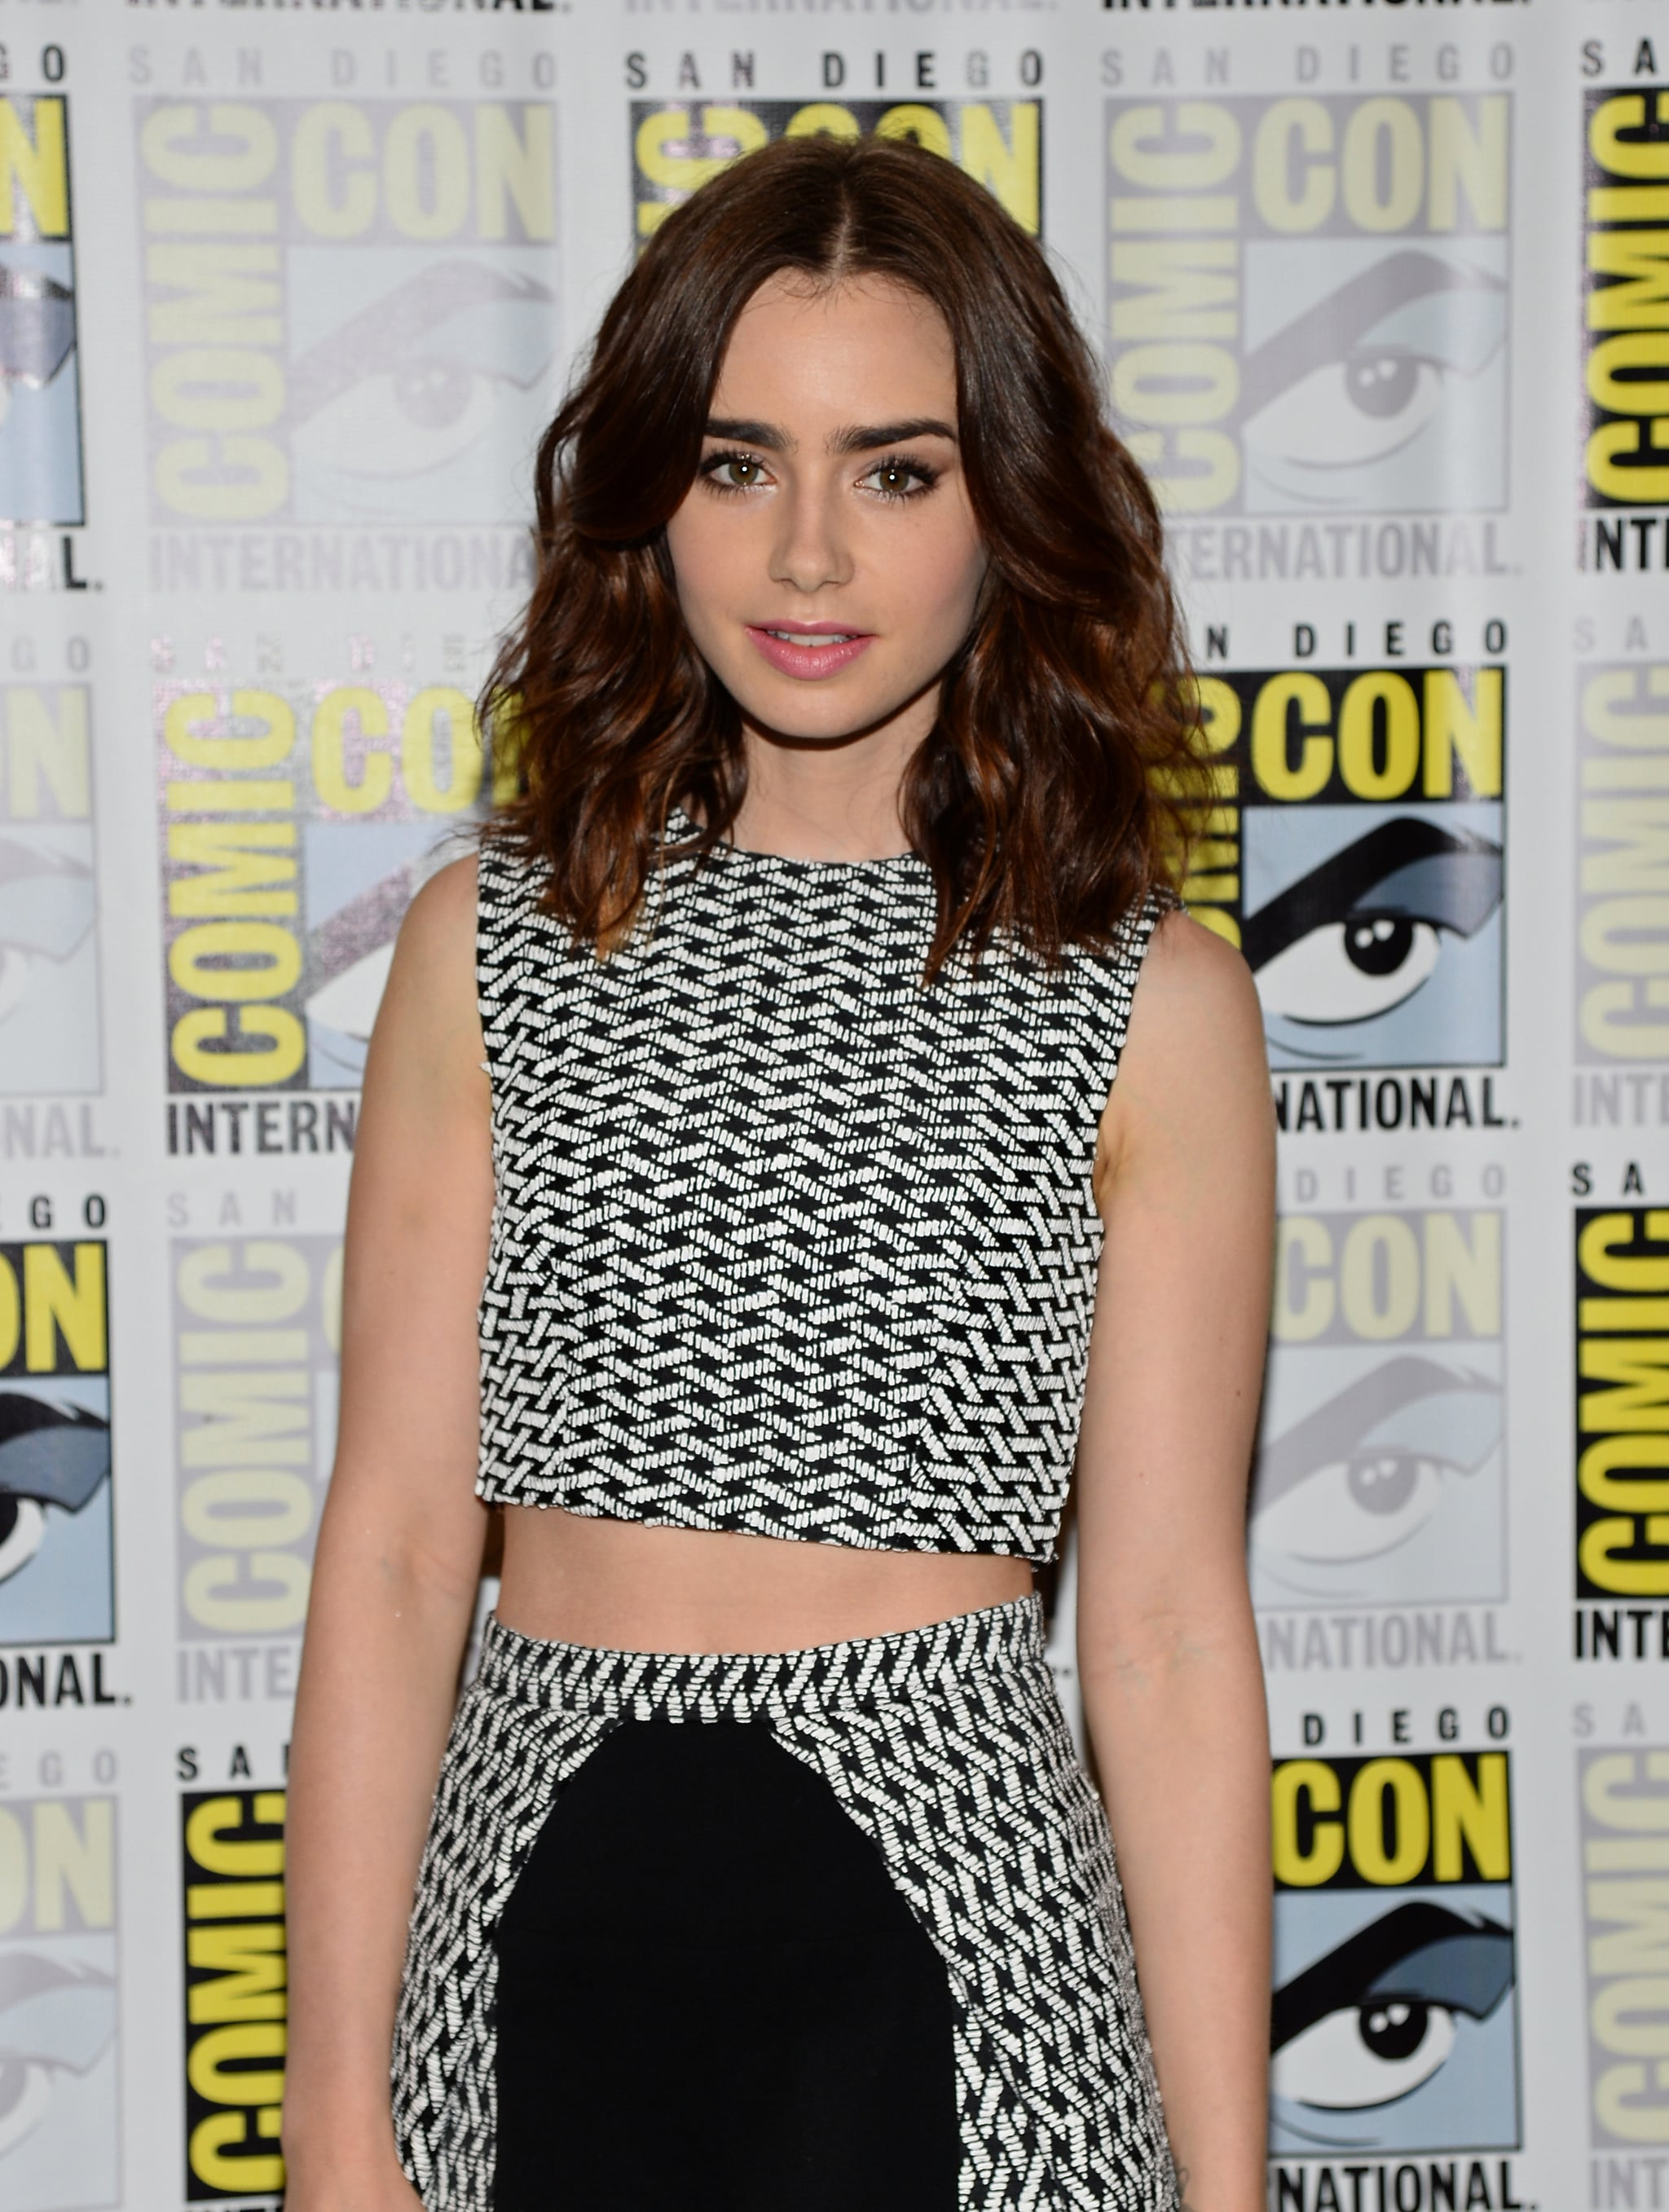 Lily Collins paired her wavy lob with her signature bold brows while at the press line for The Mortal Instruments: City of Bones.